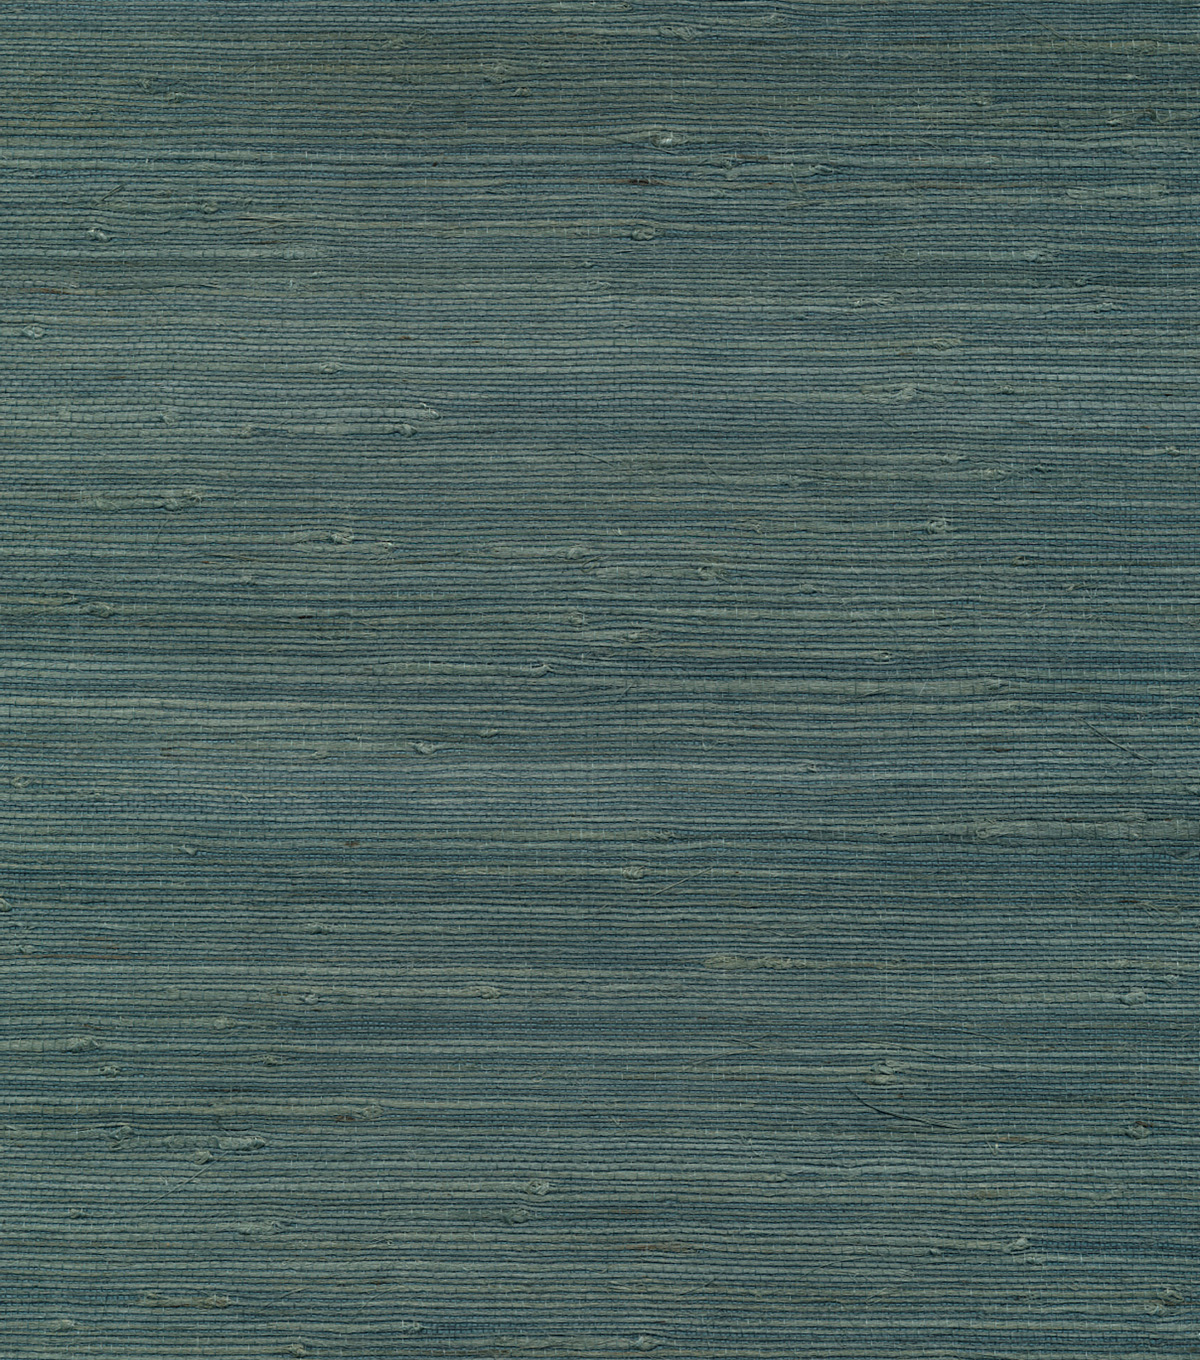 Jurou Blue Grasscloth Wallpaper Sample